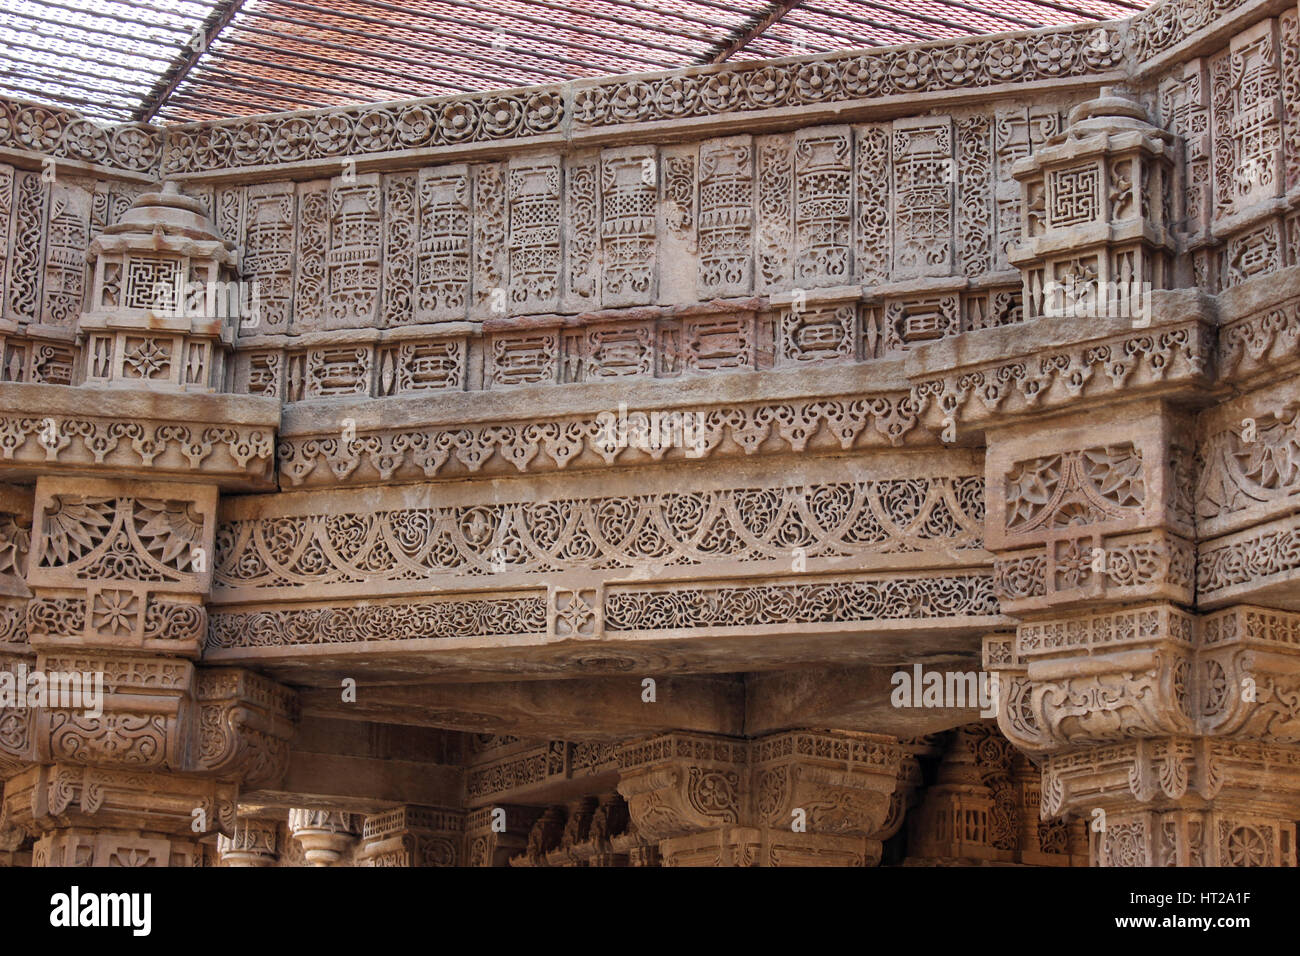 Detailed patterns carved on stone panel and brackets. Adalaj Stepwell, Ahmedabad, Gujarat, India - Stock Image